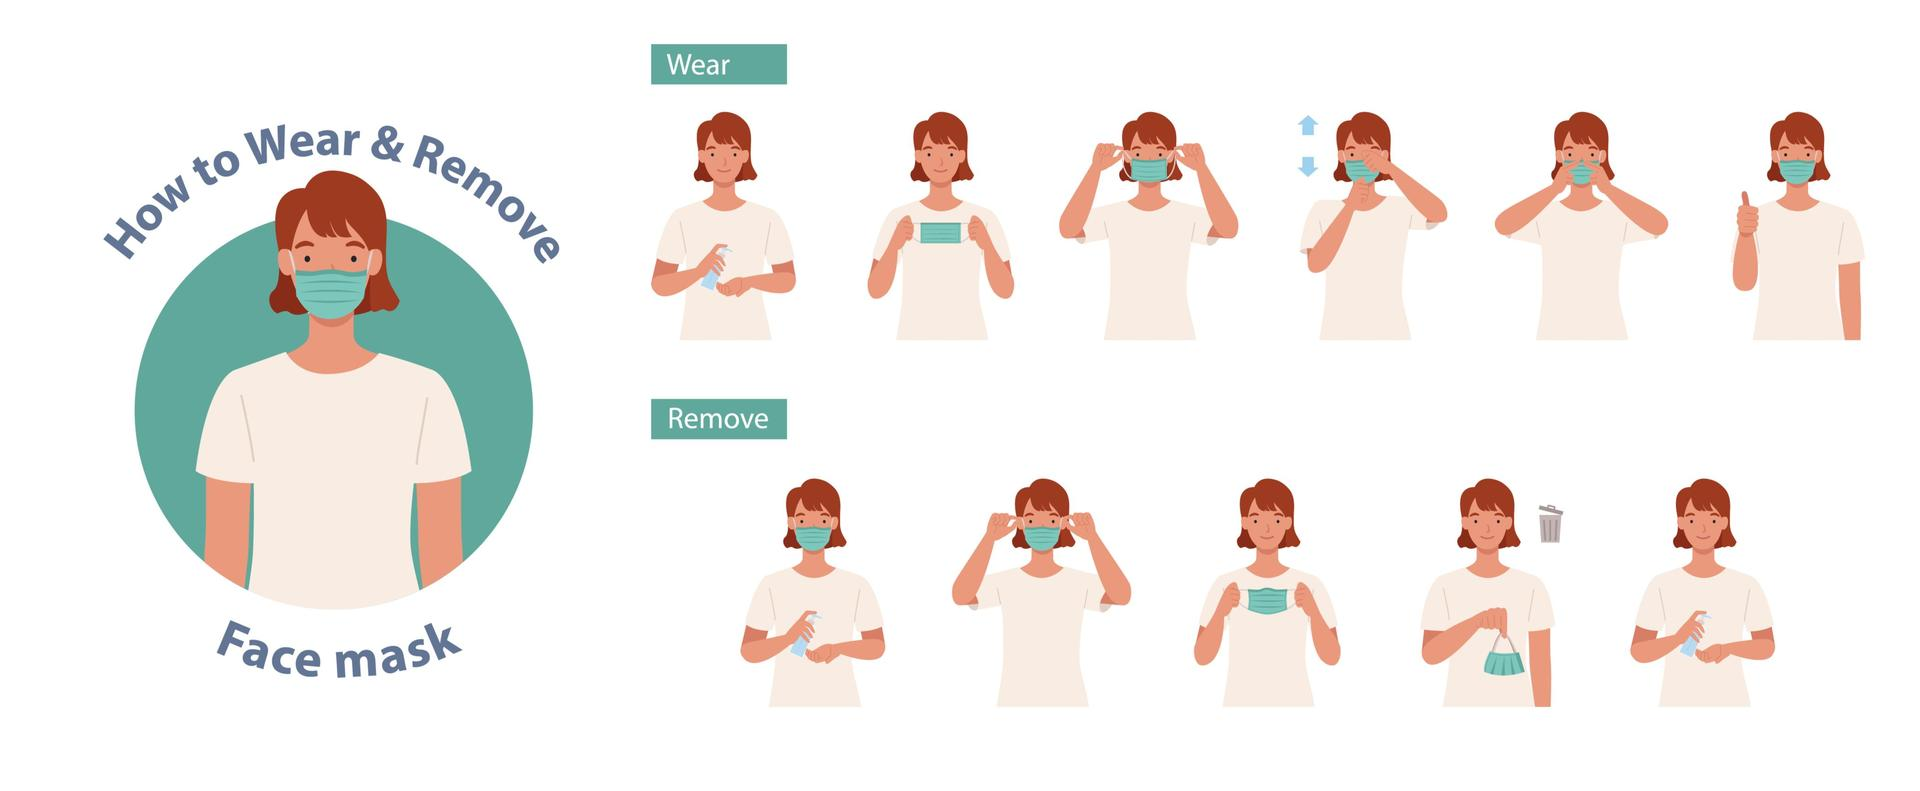 cartoon of a person putting on a mask and removing their mask correctly